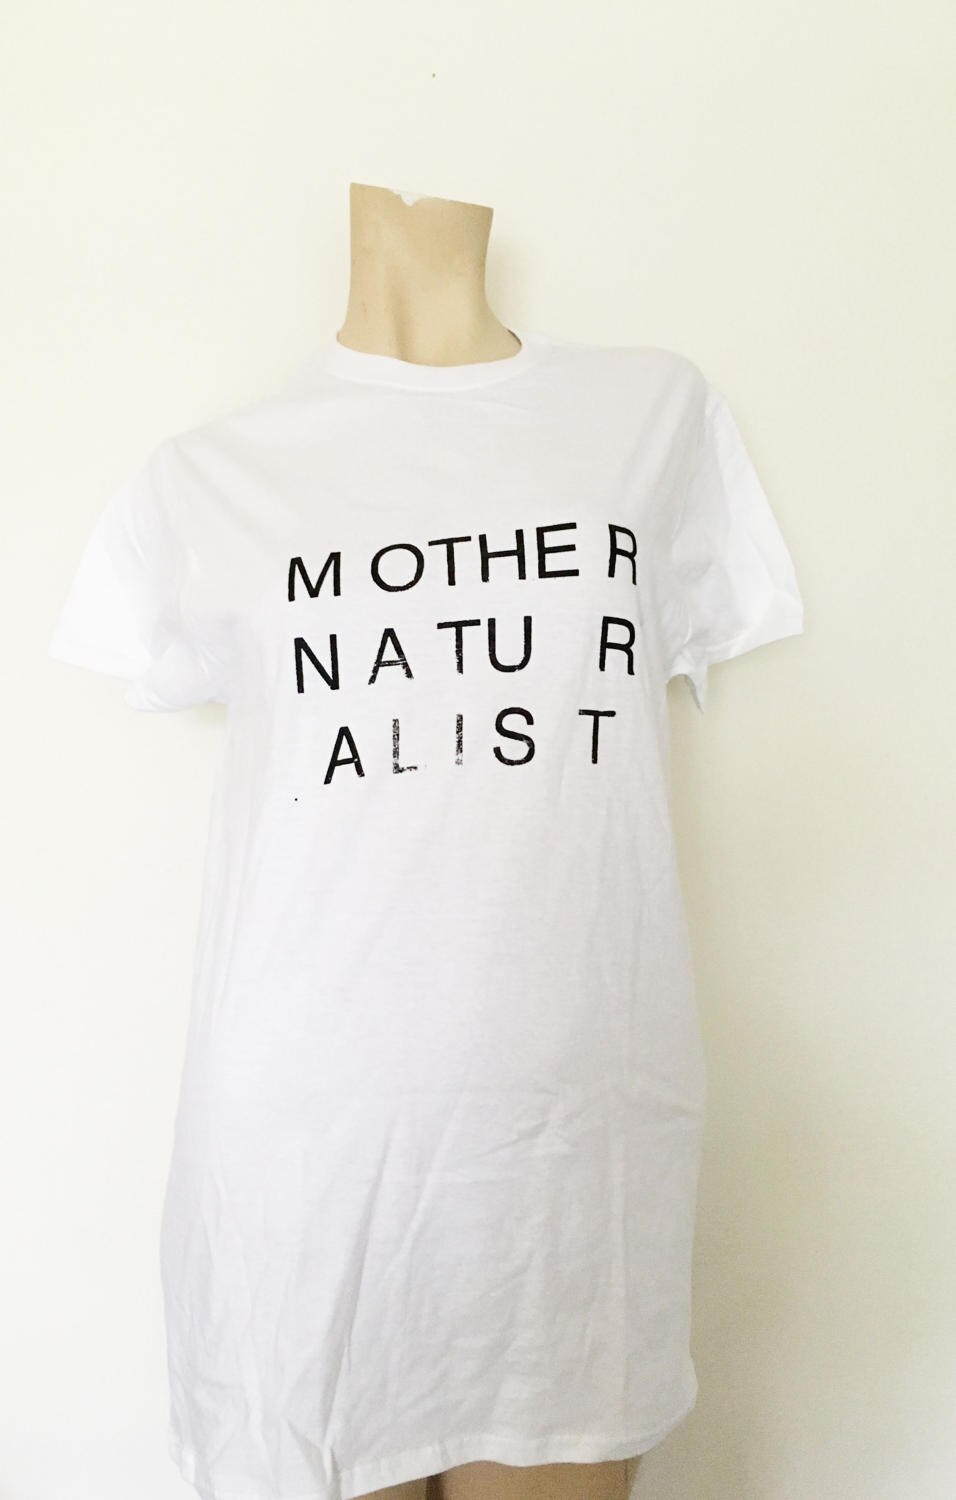 mother naturalist tshirt fruit of the loom small cotton tee